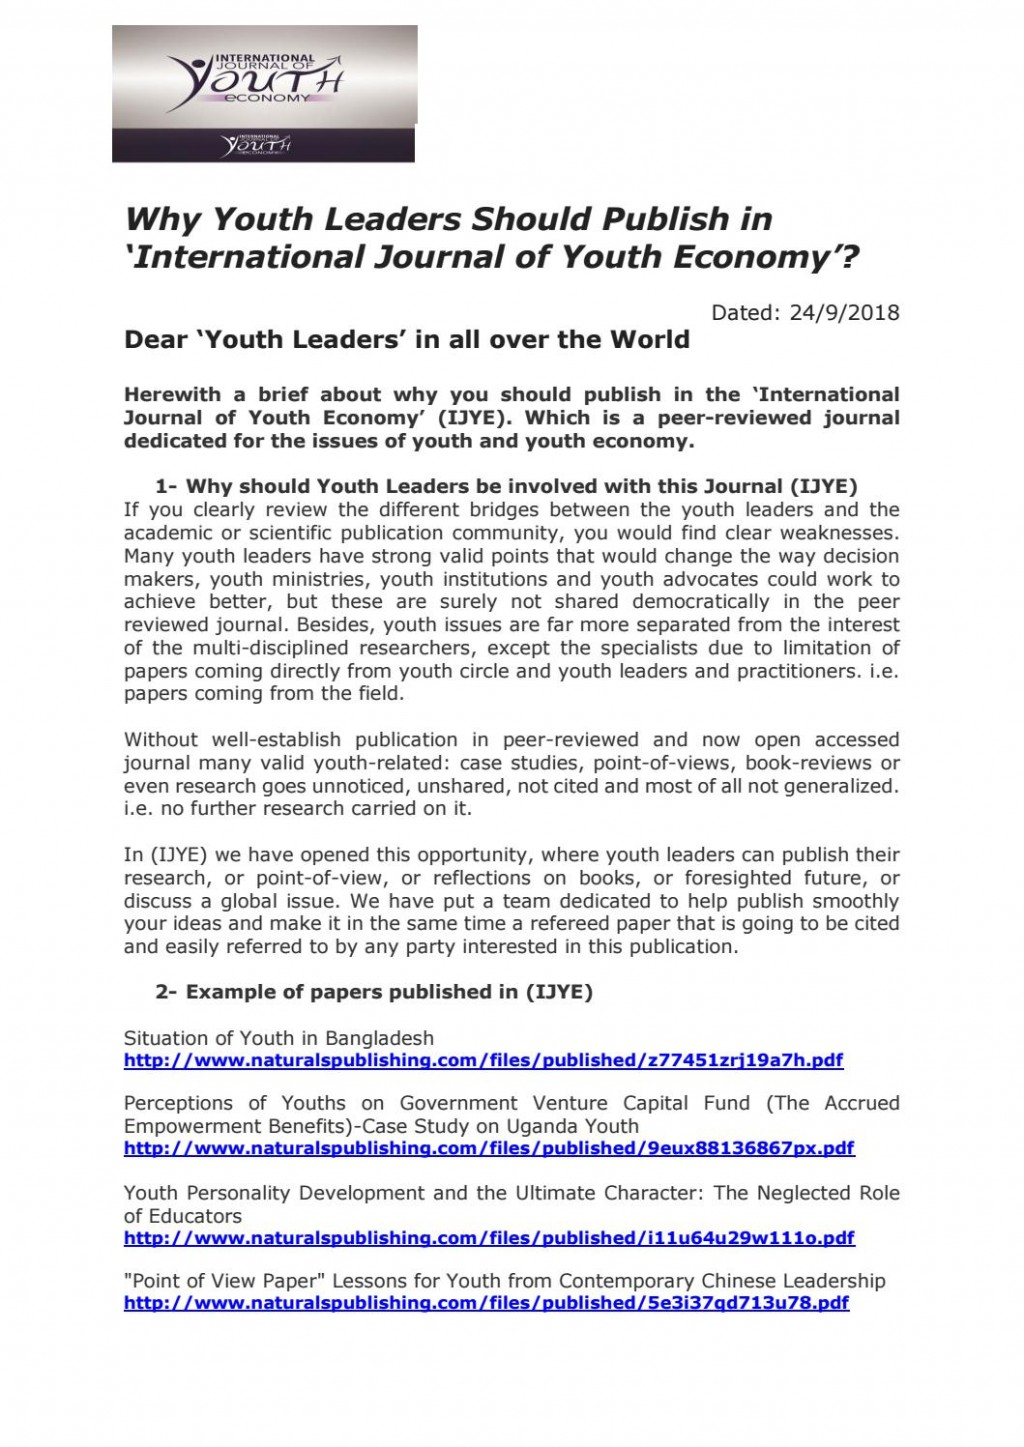 002 Page 1 How To Get Research Paper Published In International Frightening Journal Large